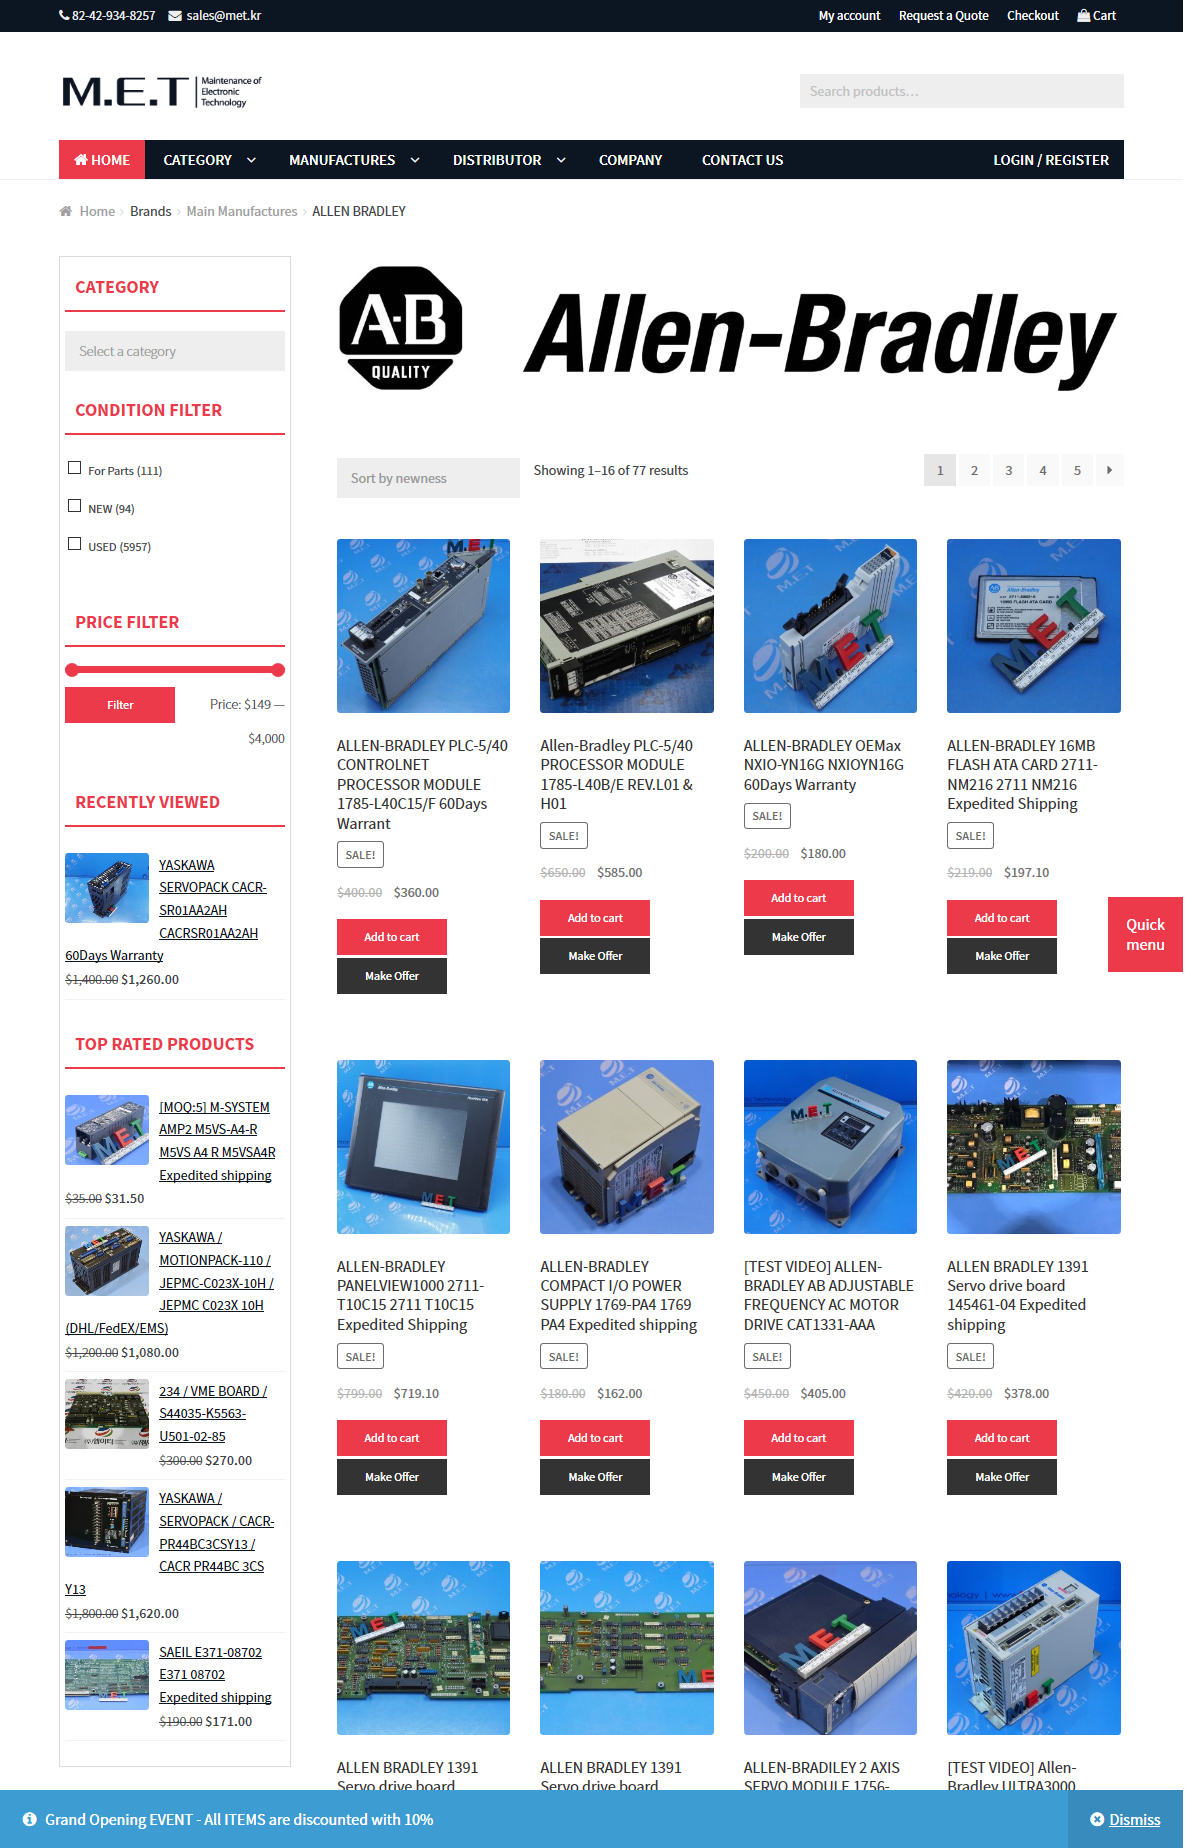 Screenshot-2017-11-29 ALLEN BRADLEY MET